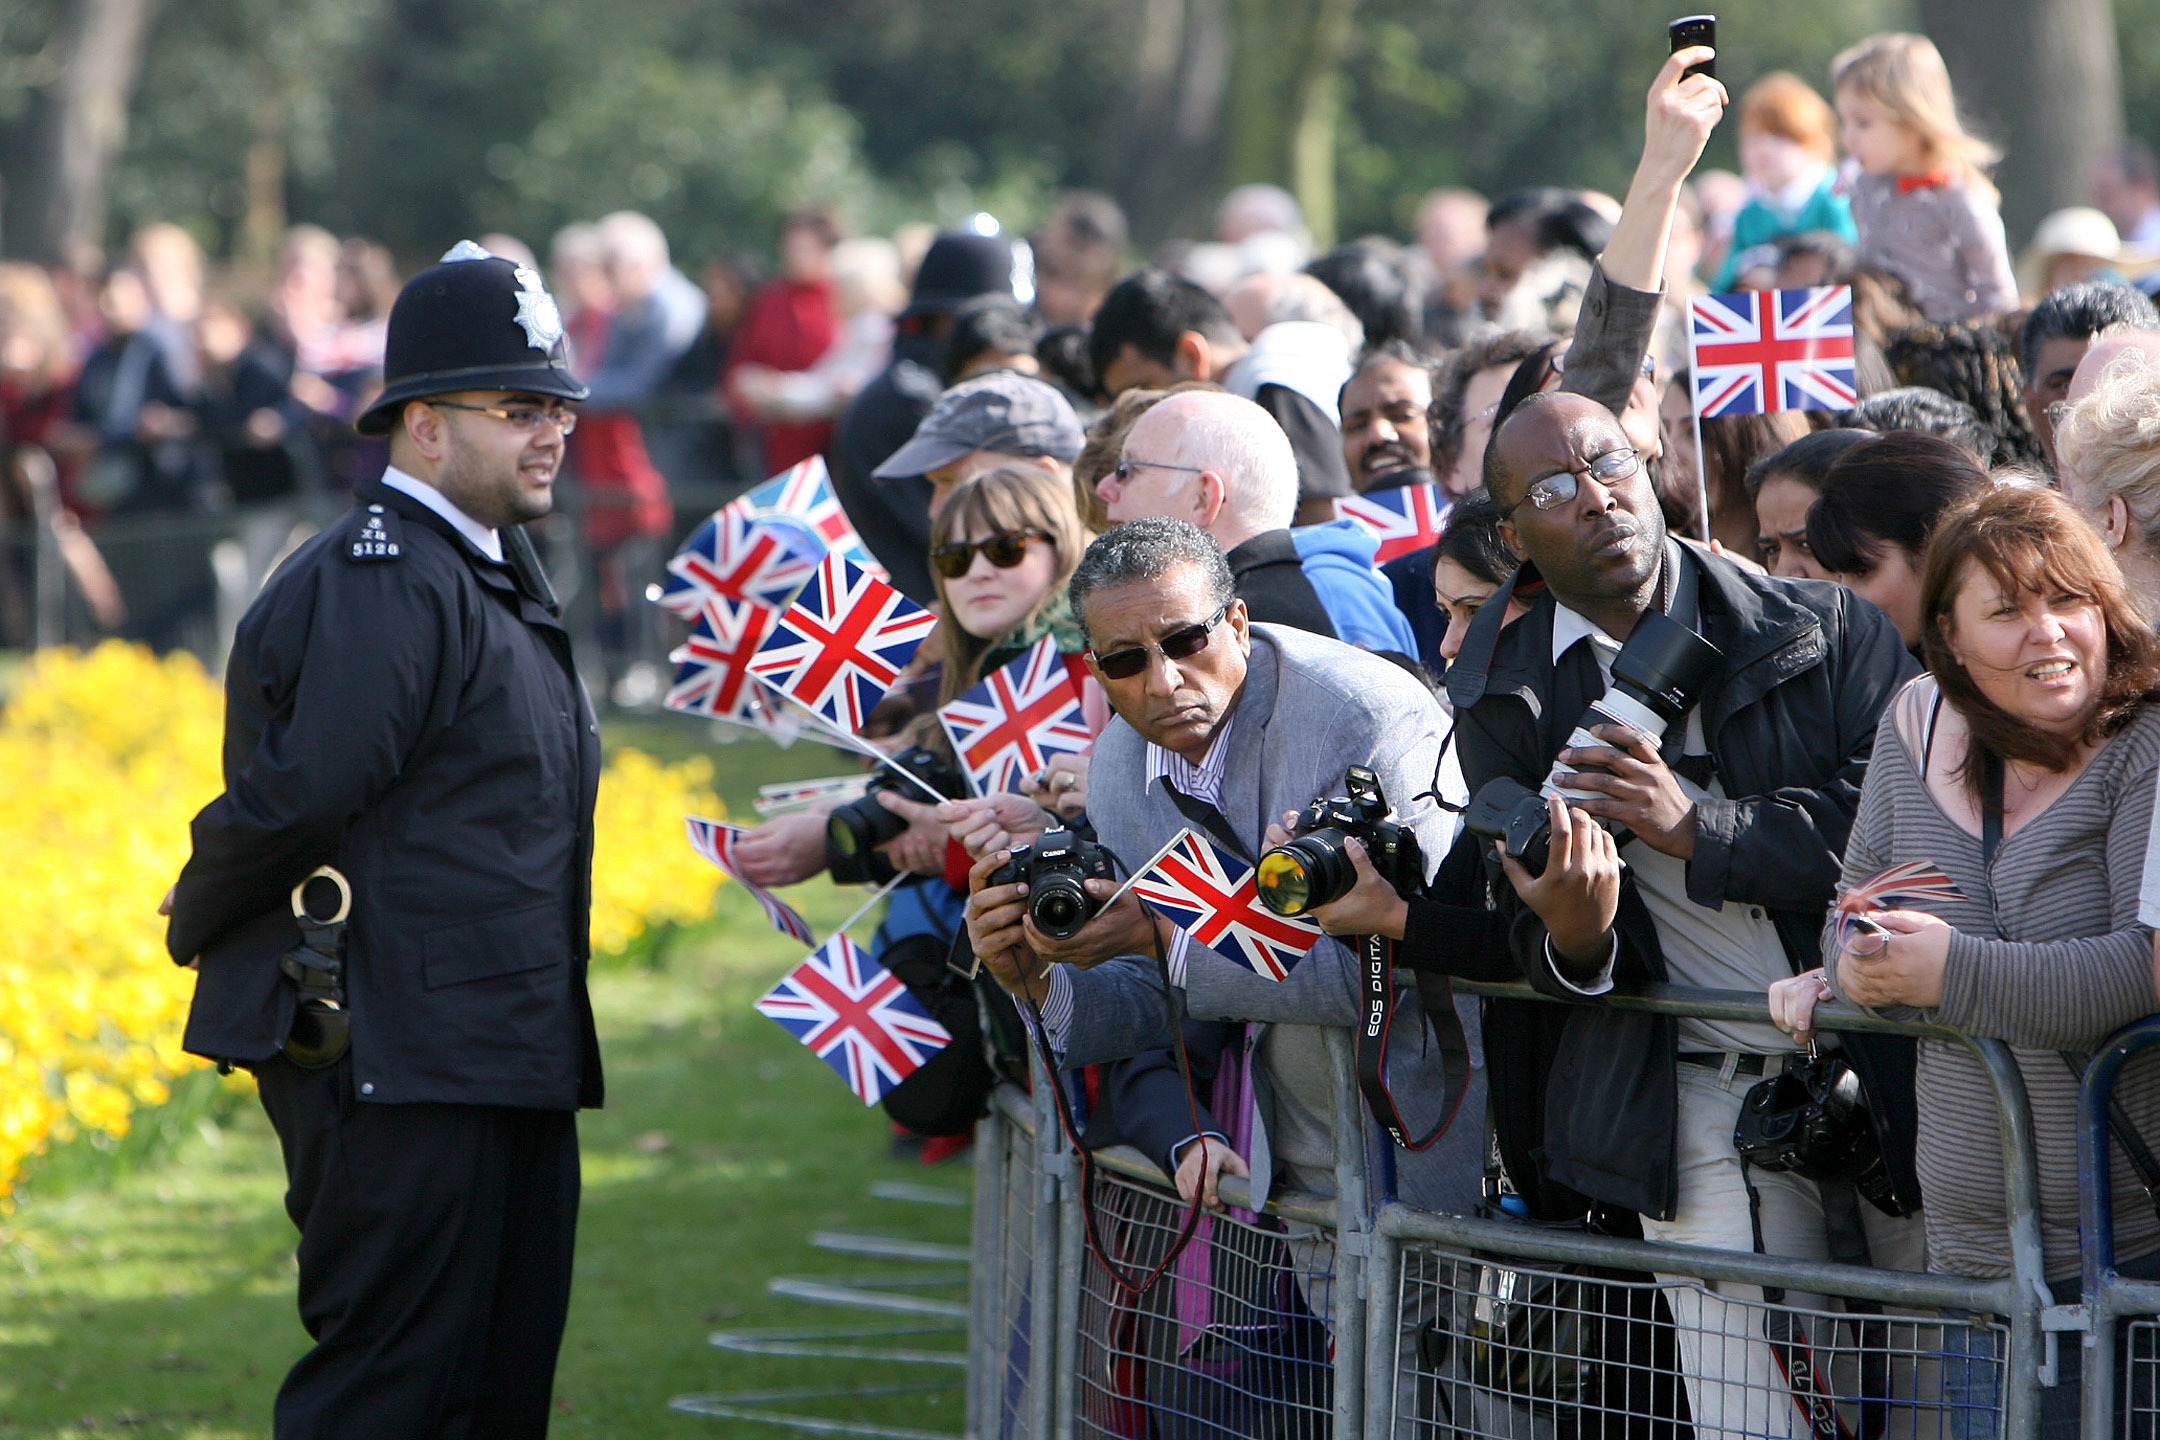 Large crowds attended the royal visit